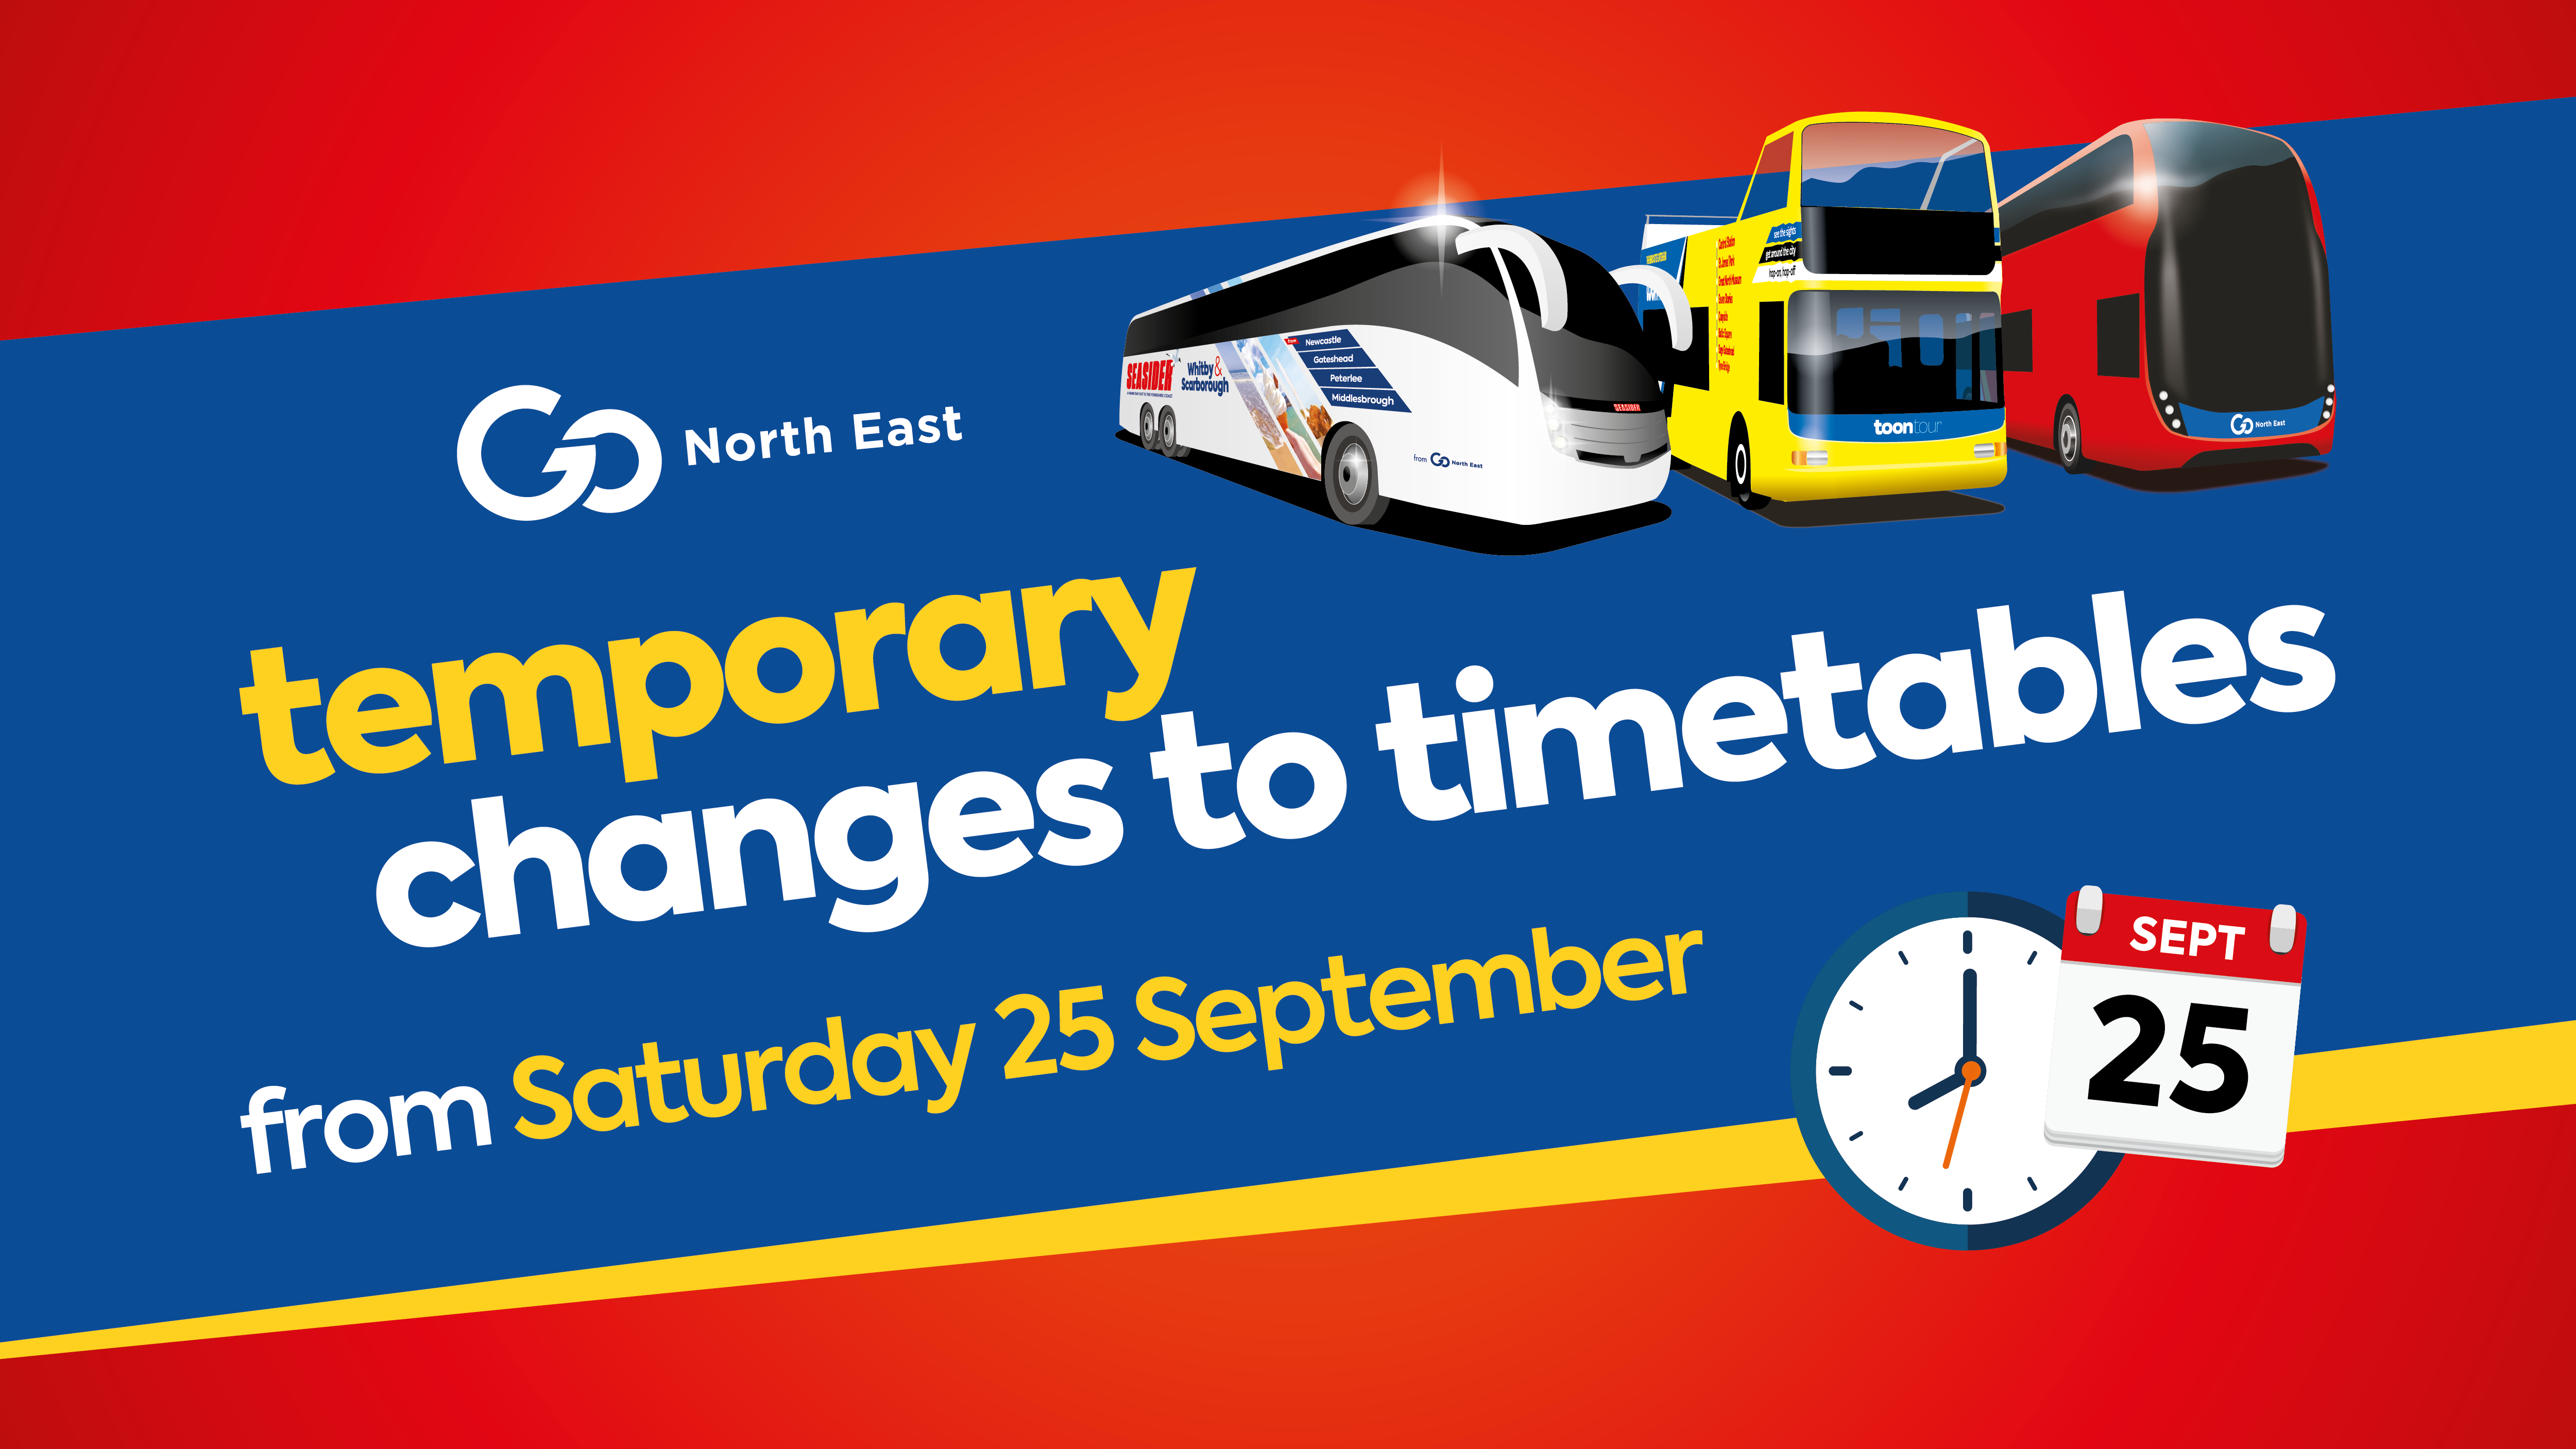 Temporary changes to timetables from 25 September